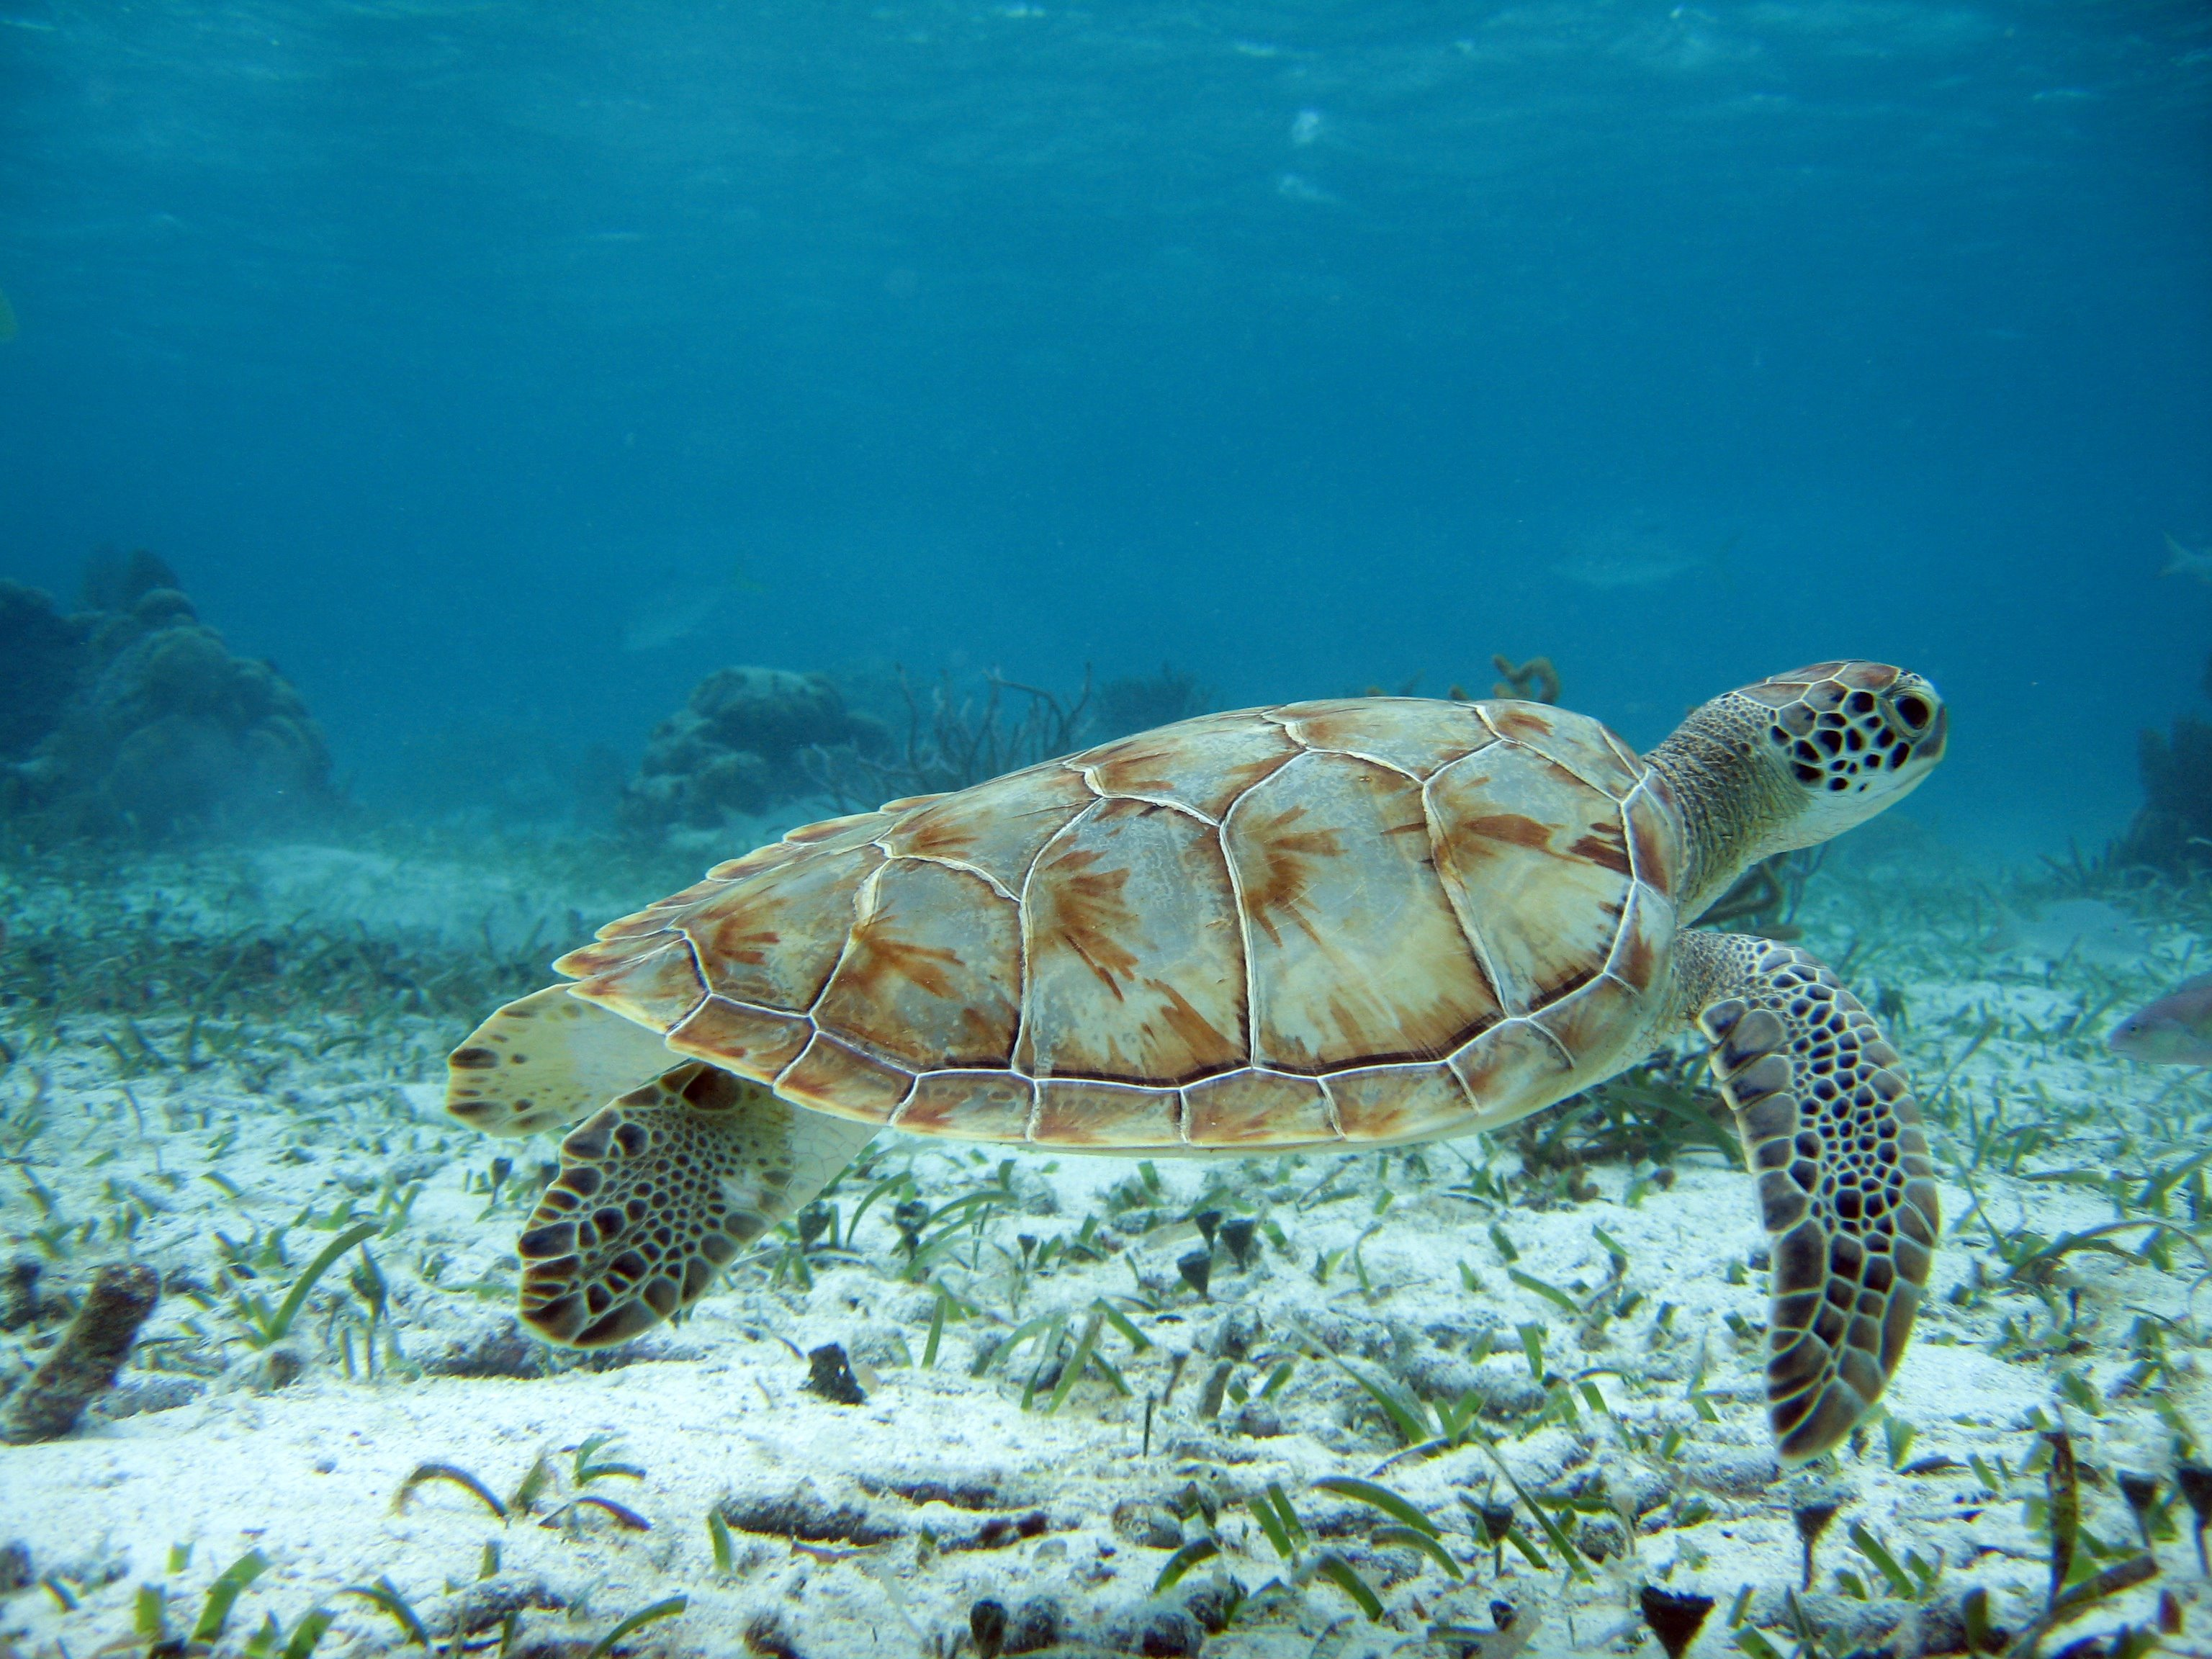 Turtle Sighting, Belize Barrier Reef